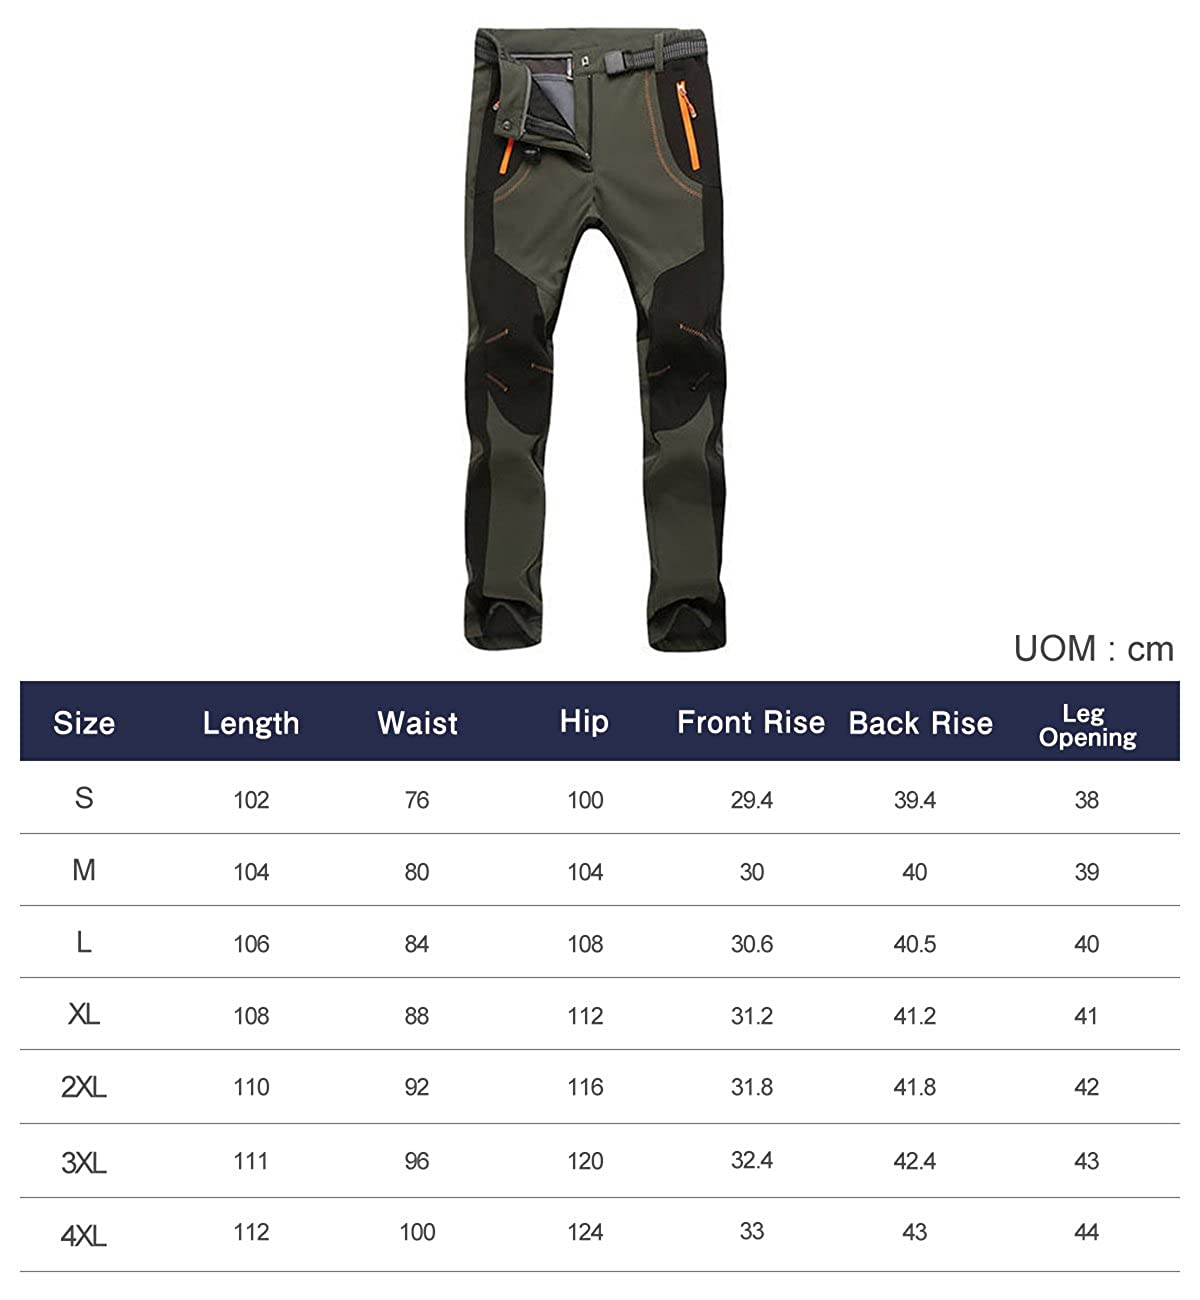 Lachi Mens Cargo Work Trousers Cargo Combat Work Trouser with Knee Pad Pockets and Reinforced Seams Softshell Fleece Thermal Pants Cargo Warm Windproof Hiking Camping Outdoor